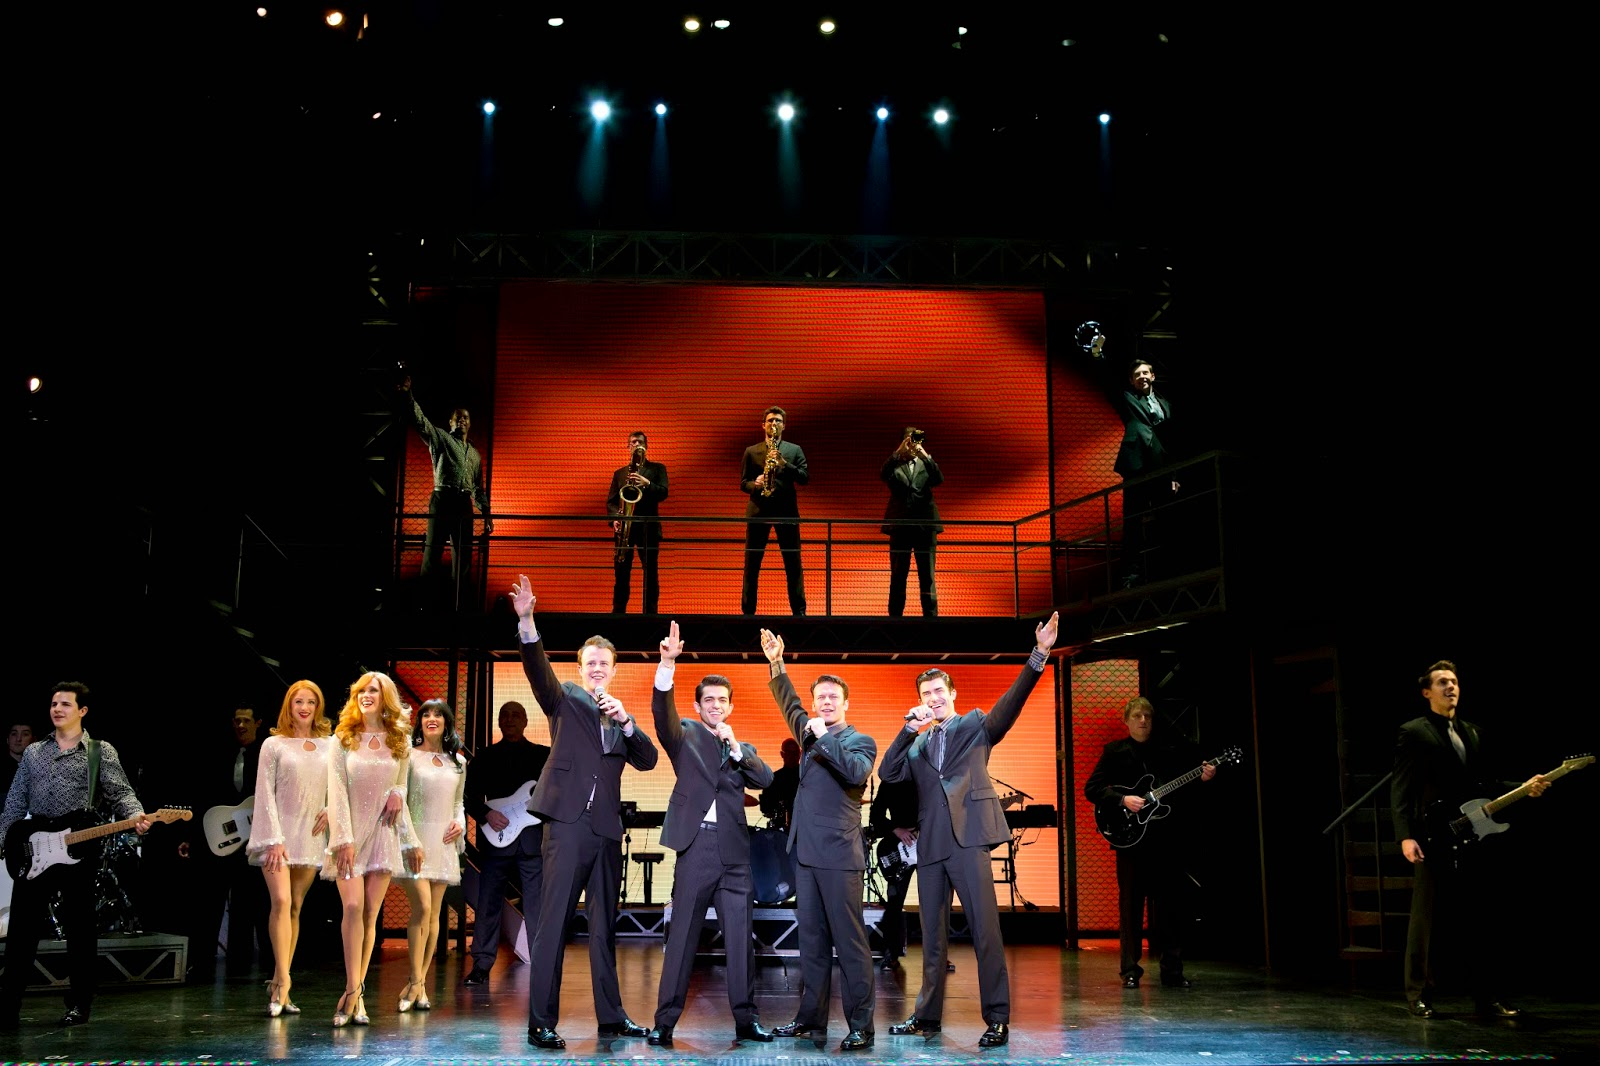 Jersey Boys Tickets in Tampa, FL Buy Jersey Boys tickets in Tampa, FL at Stub! To buy Jersey Boys tickets for sale in Tampa, FL at discounted prices, choose from the Jersey Boys in .